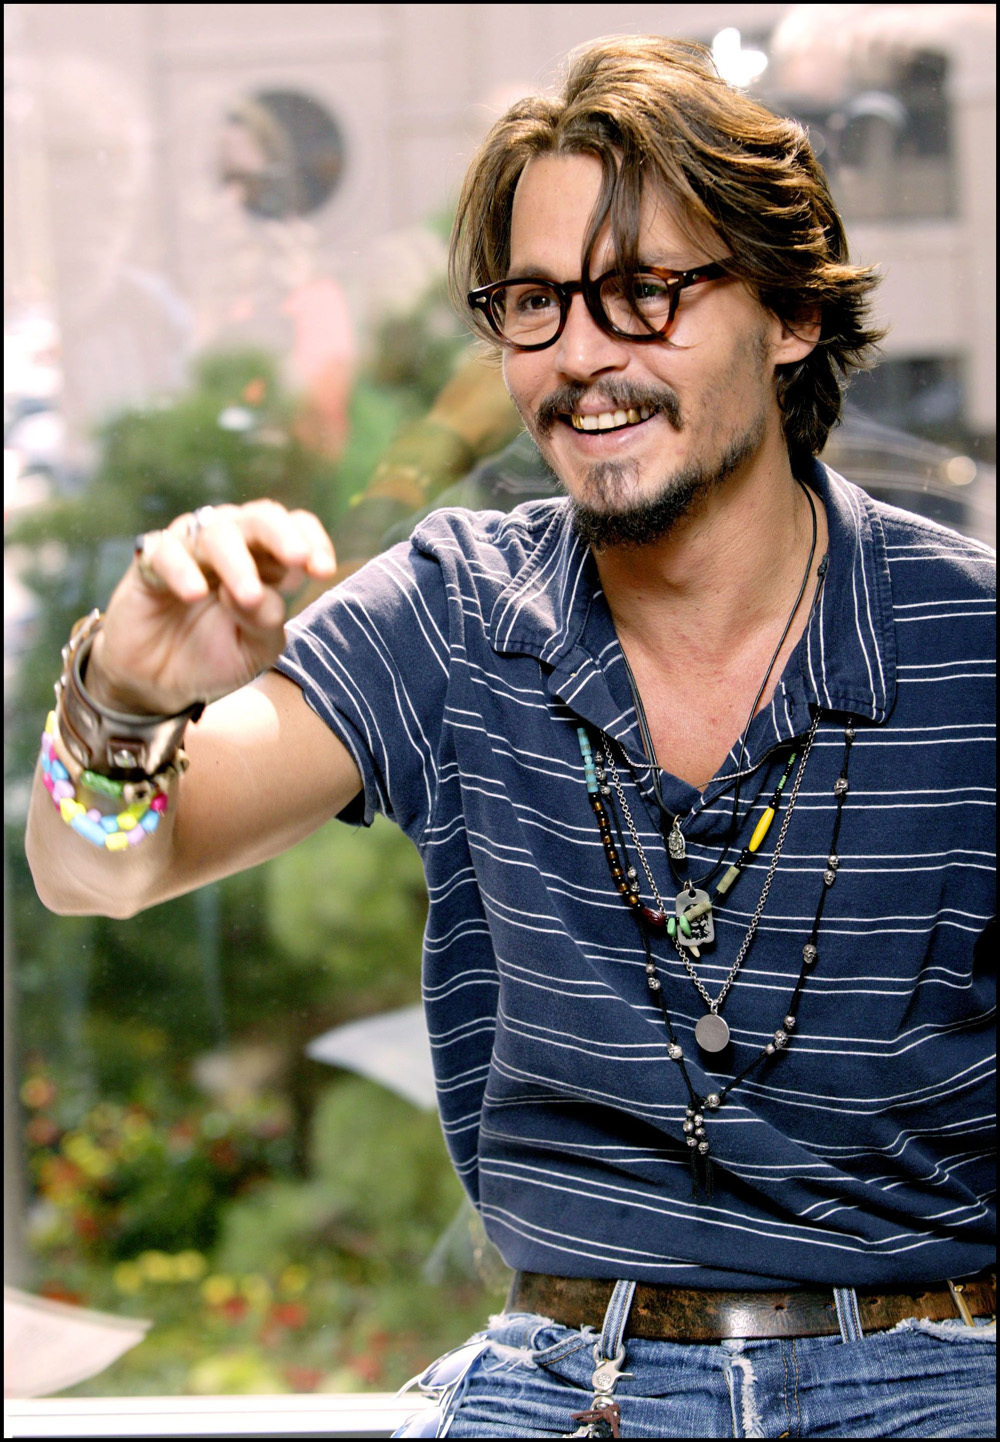 johnny depp is the sexiest actor in the world